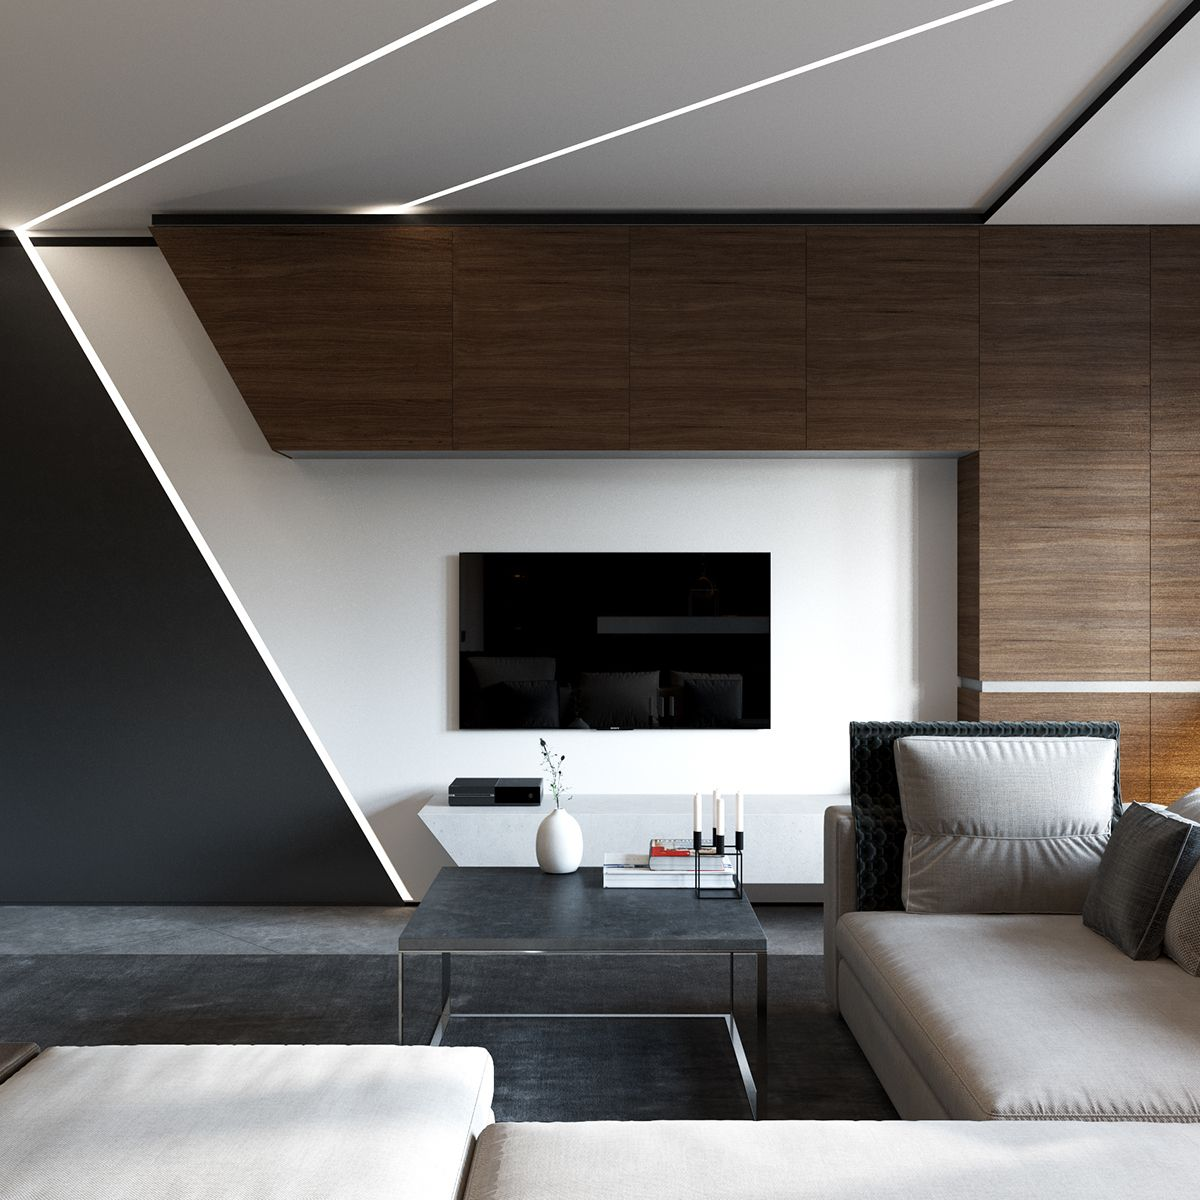 New Style Living Room Design Part - 49: Minimalist Style Living Room Interiors And Furnishings